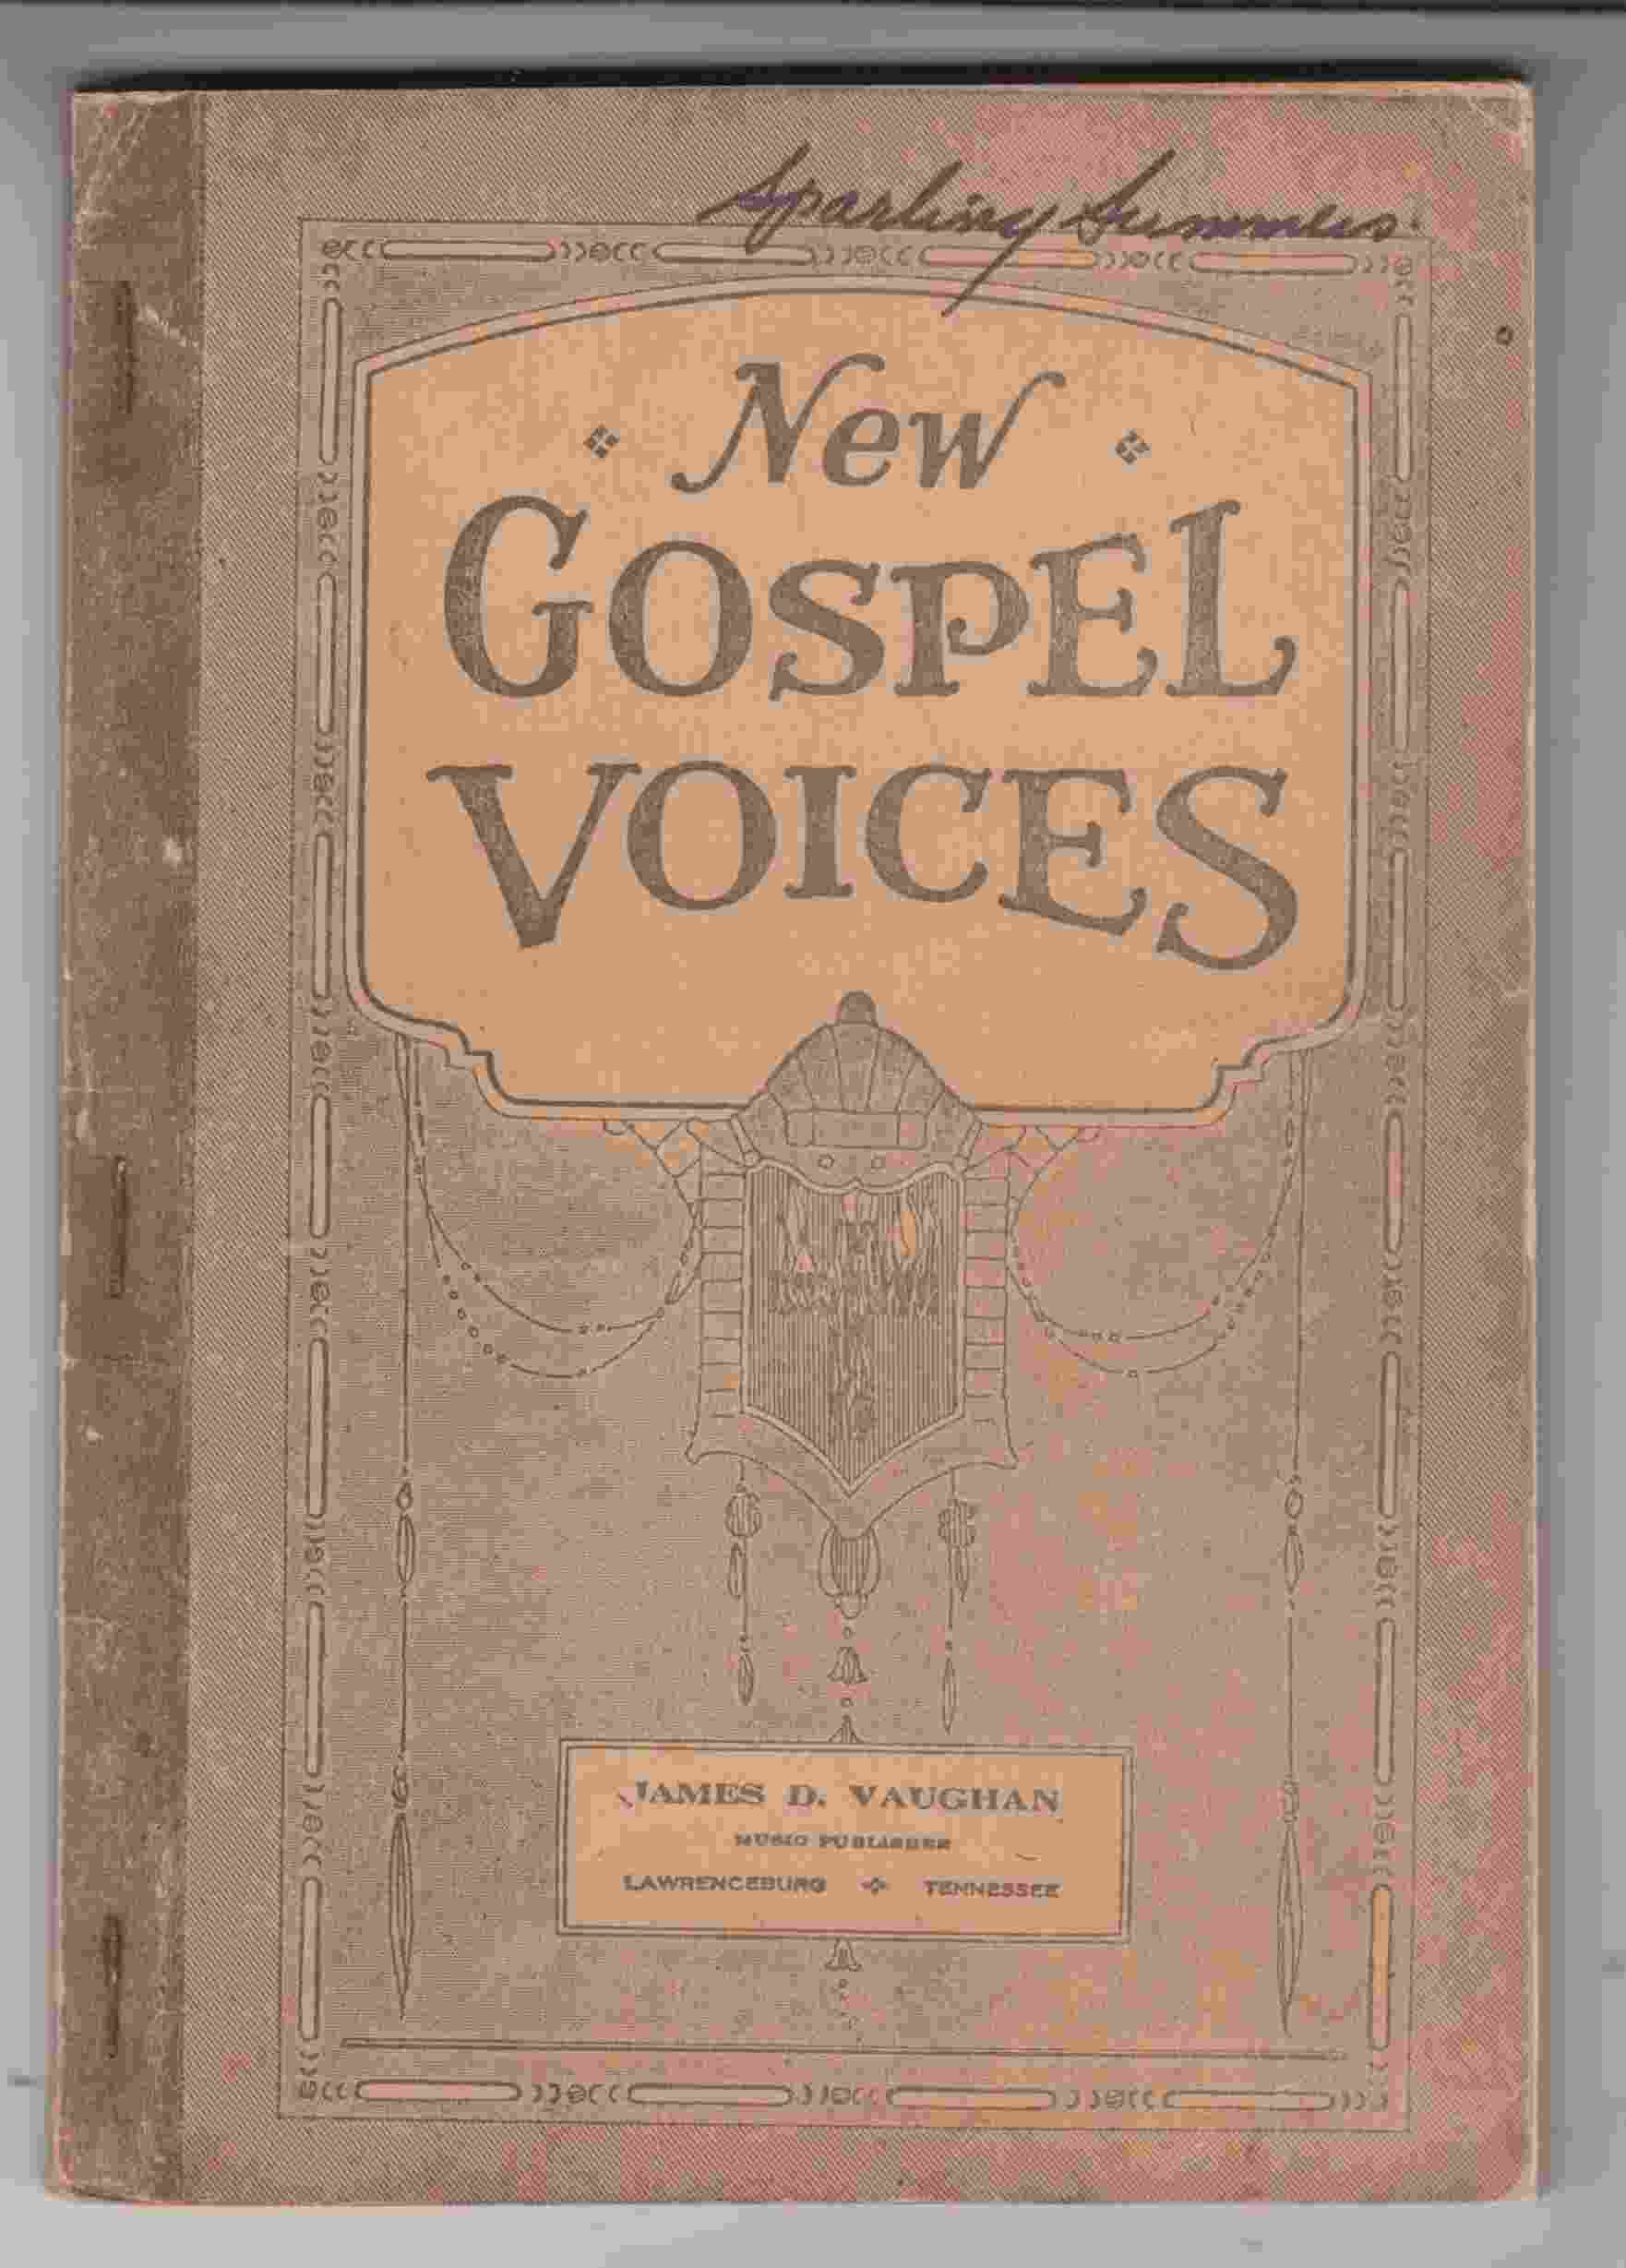 Image for New Gospel Voices for Sunday-Schools, Singing-Schools, Revivals, Conventions and General Use in Christian Work and Workshop